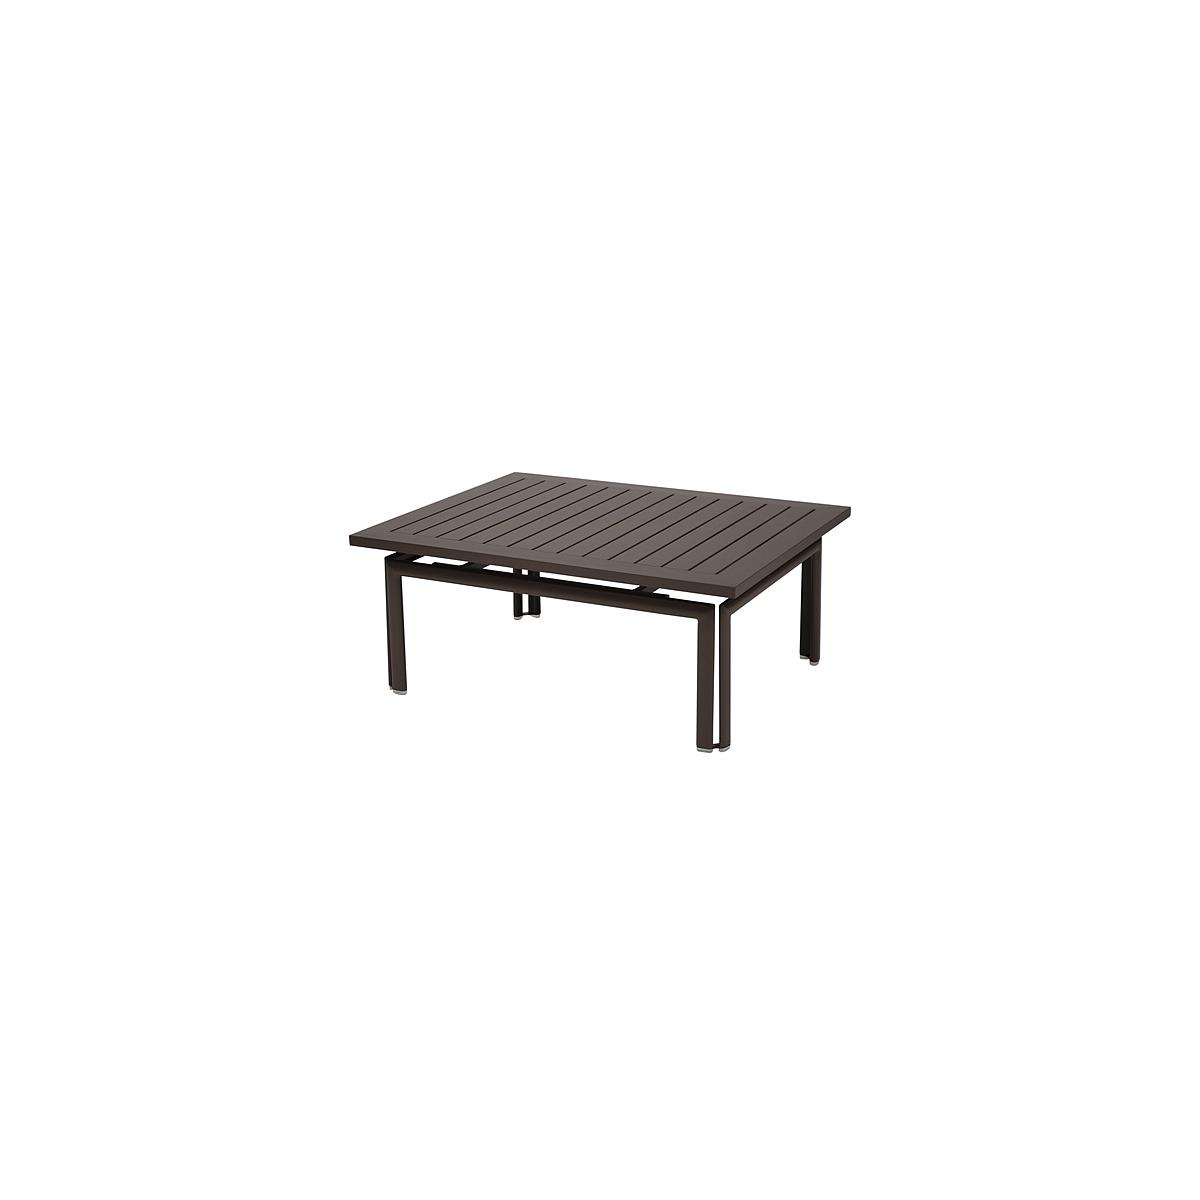 COSTA by Fermob Table basse Brun rouille